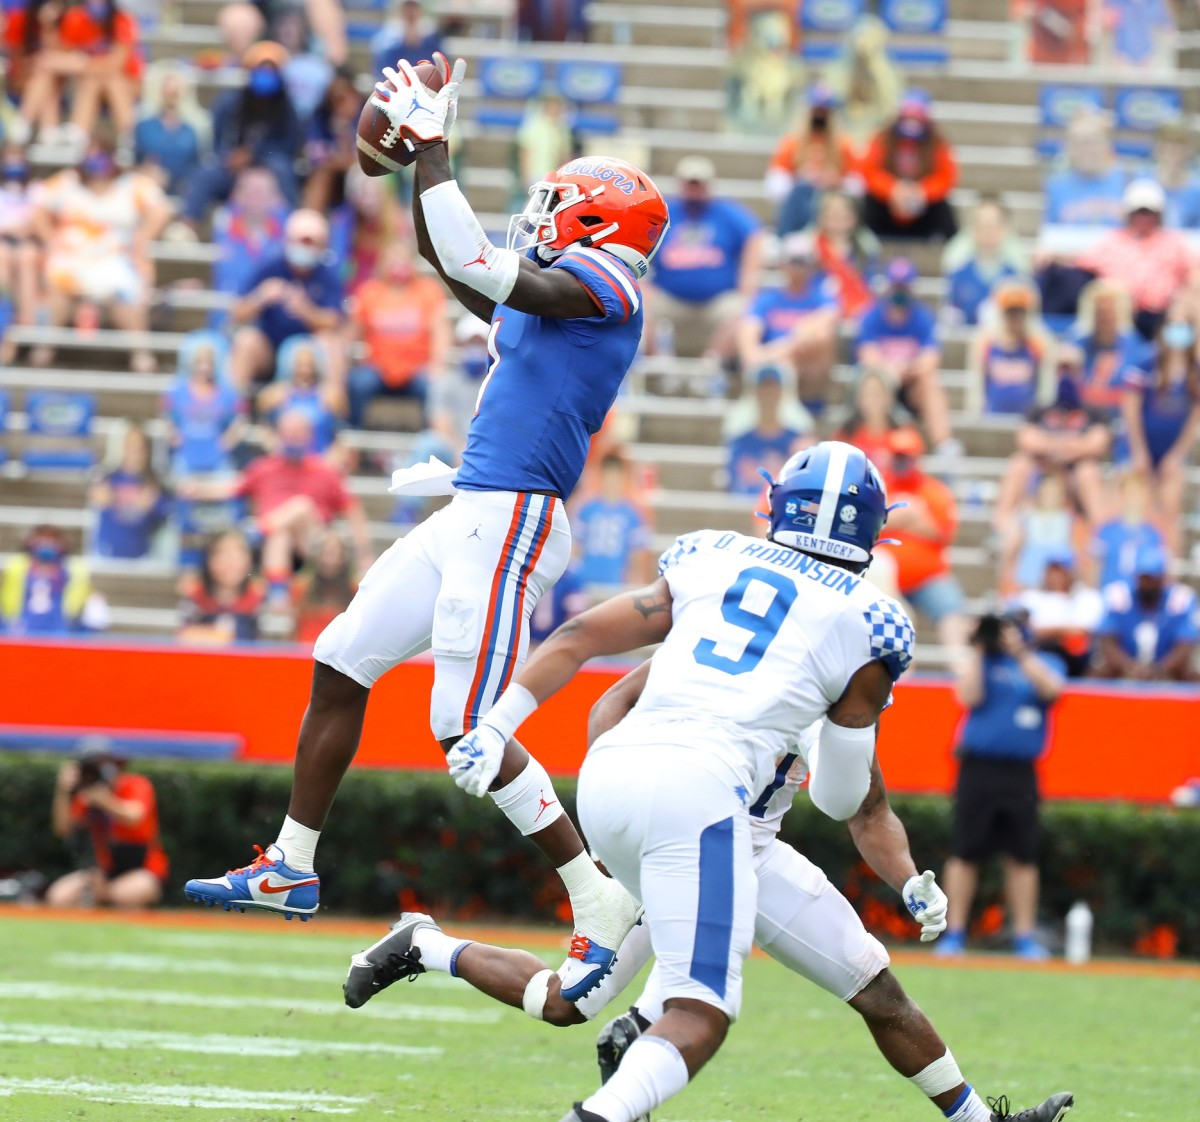 Florida Gators receiver Kadarius Toney (1) makes a leaping catch against the Kentucky Wildcats. Mandatory Credit: Brad McClenny-USA TODAY NETWORK